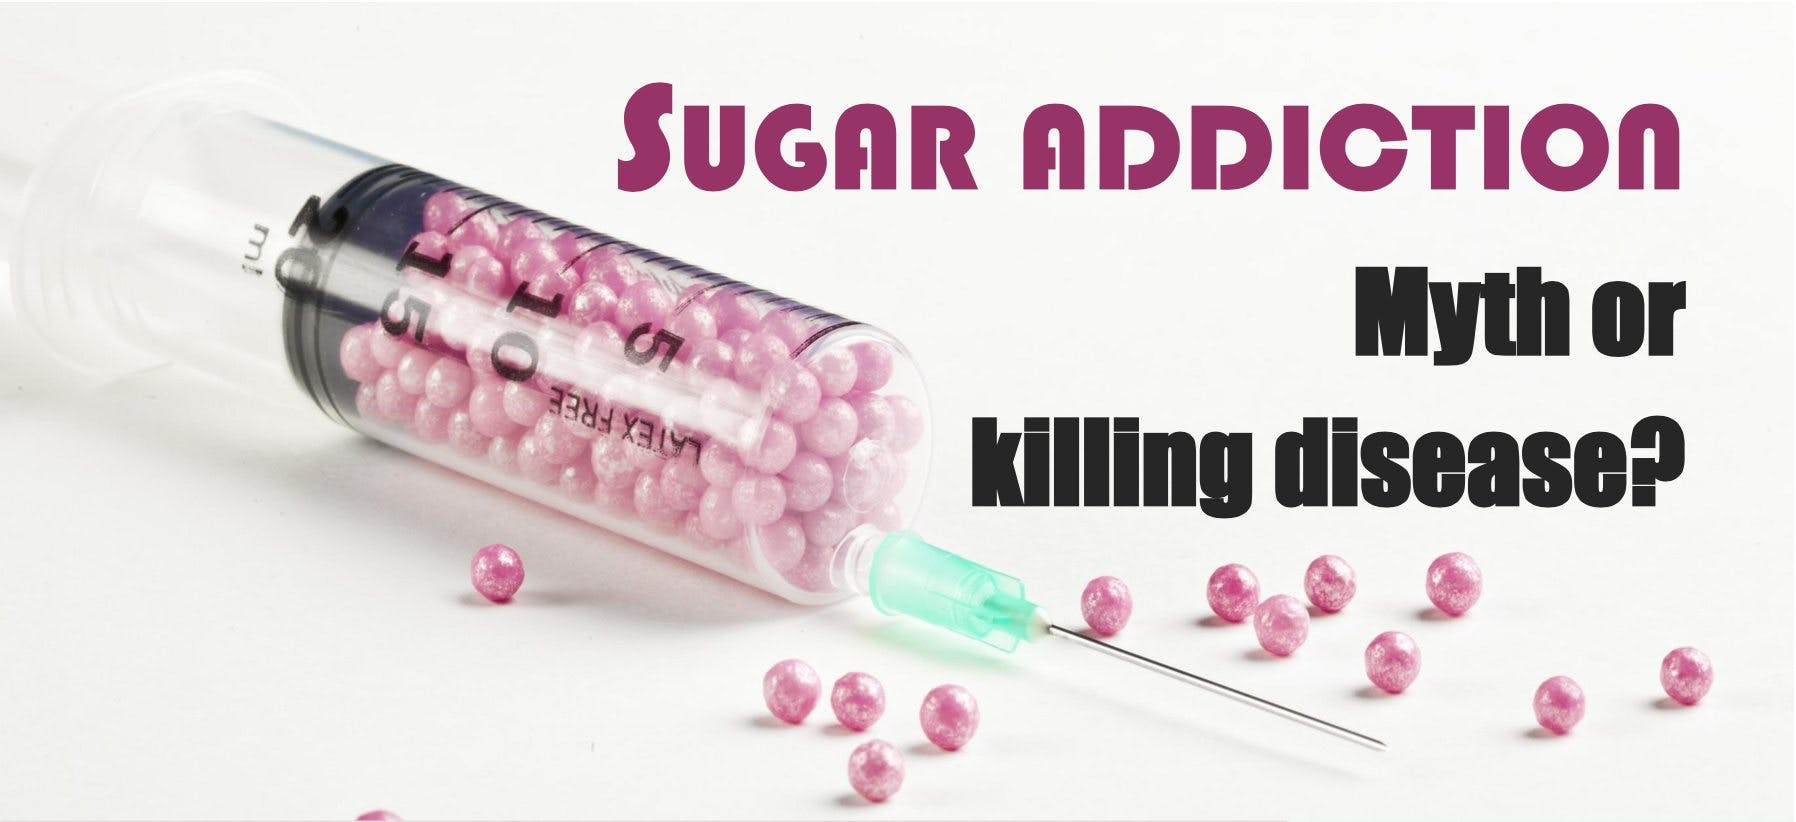 Sugaraddiction